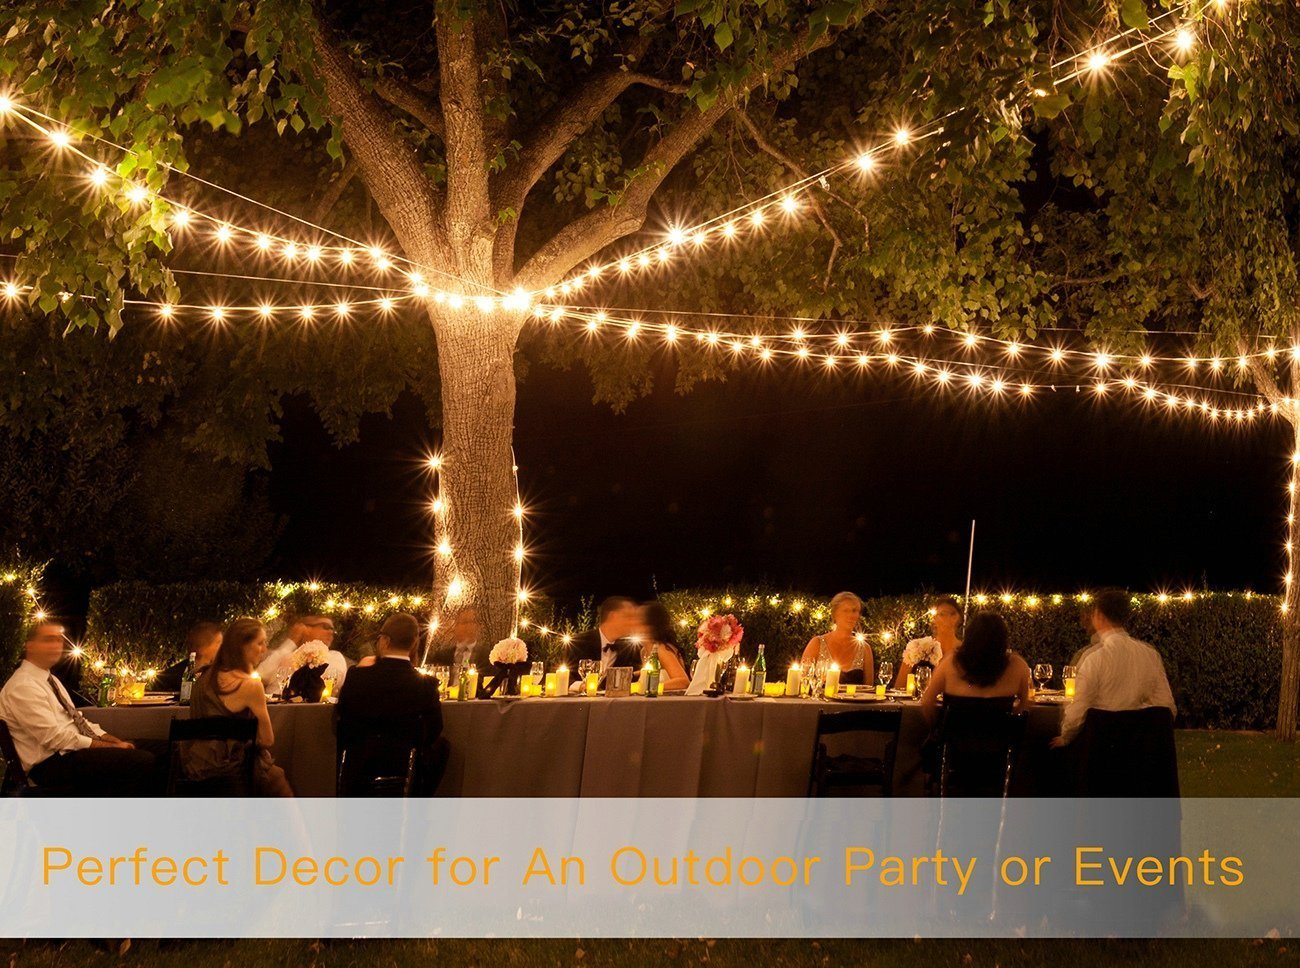 Dimmable 2W Vintage Edison Bulbs 48 Ft Commercial Grade Patio Lights Create Cafe Ambience in Your Backyard- Warm White Hanging Waterproof LED Outdoor String Lights